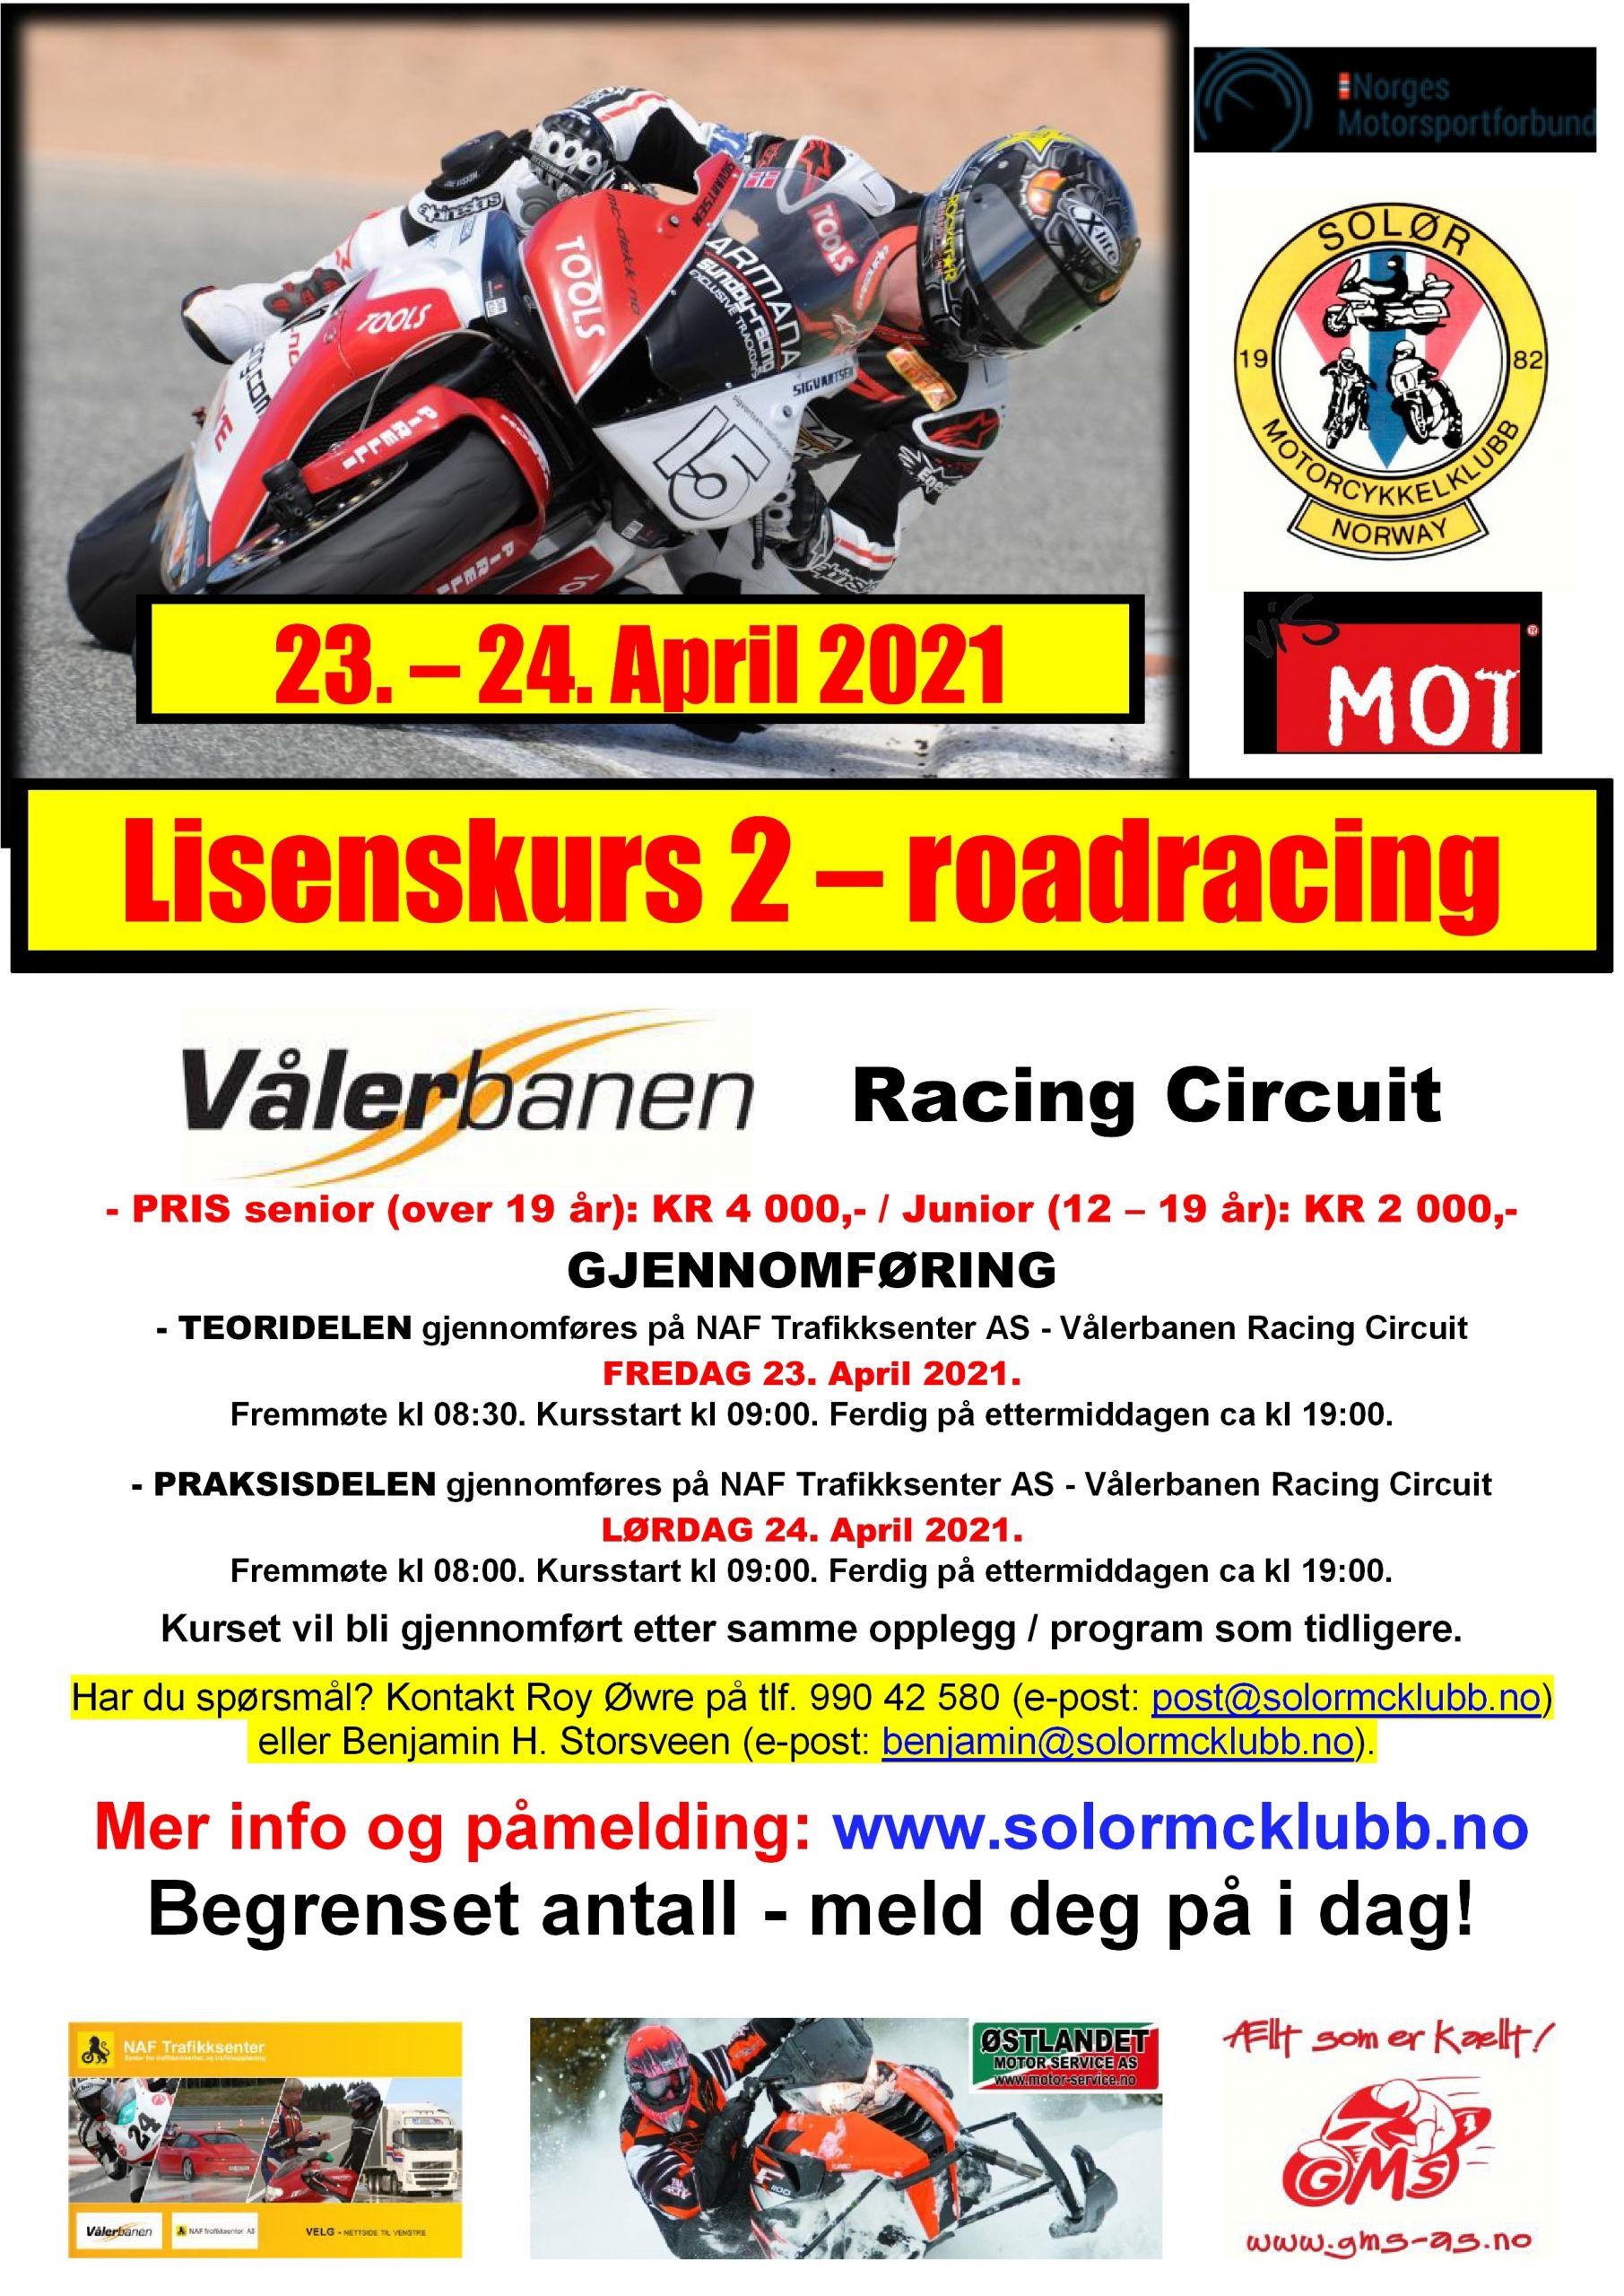 POSTER lisenskurs 2 - roadracing på Vålerbanen – APRIL 2021